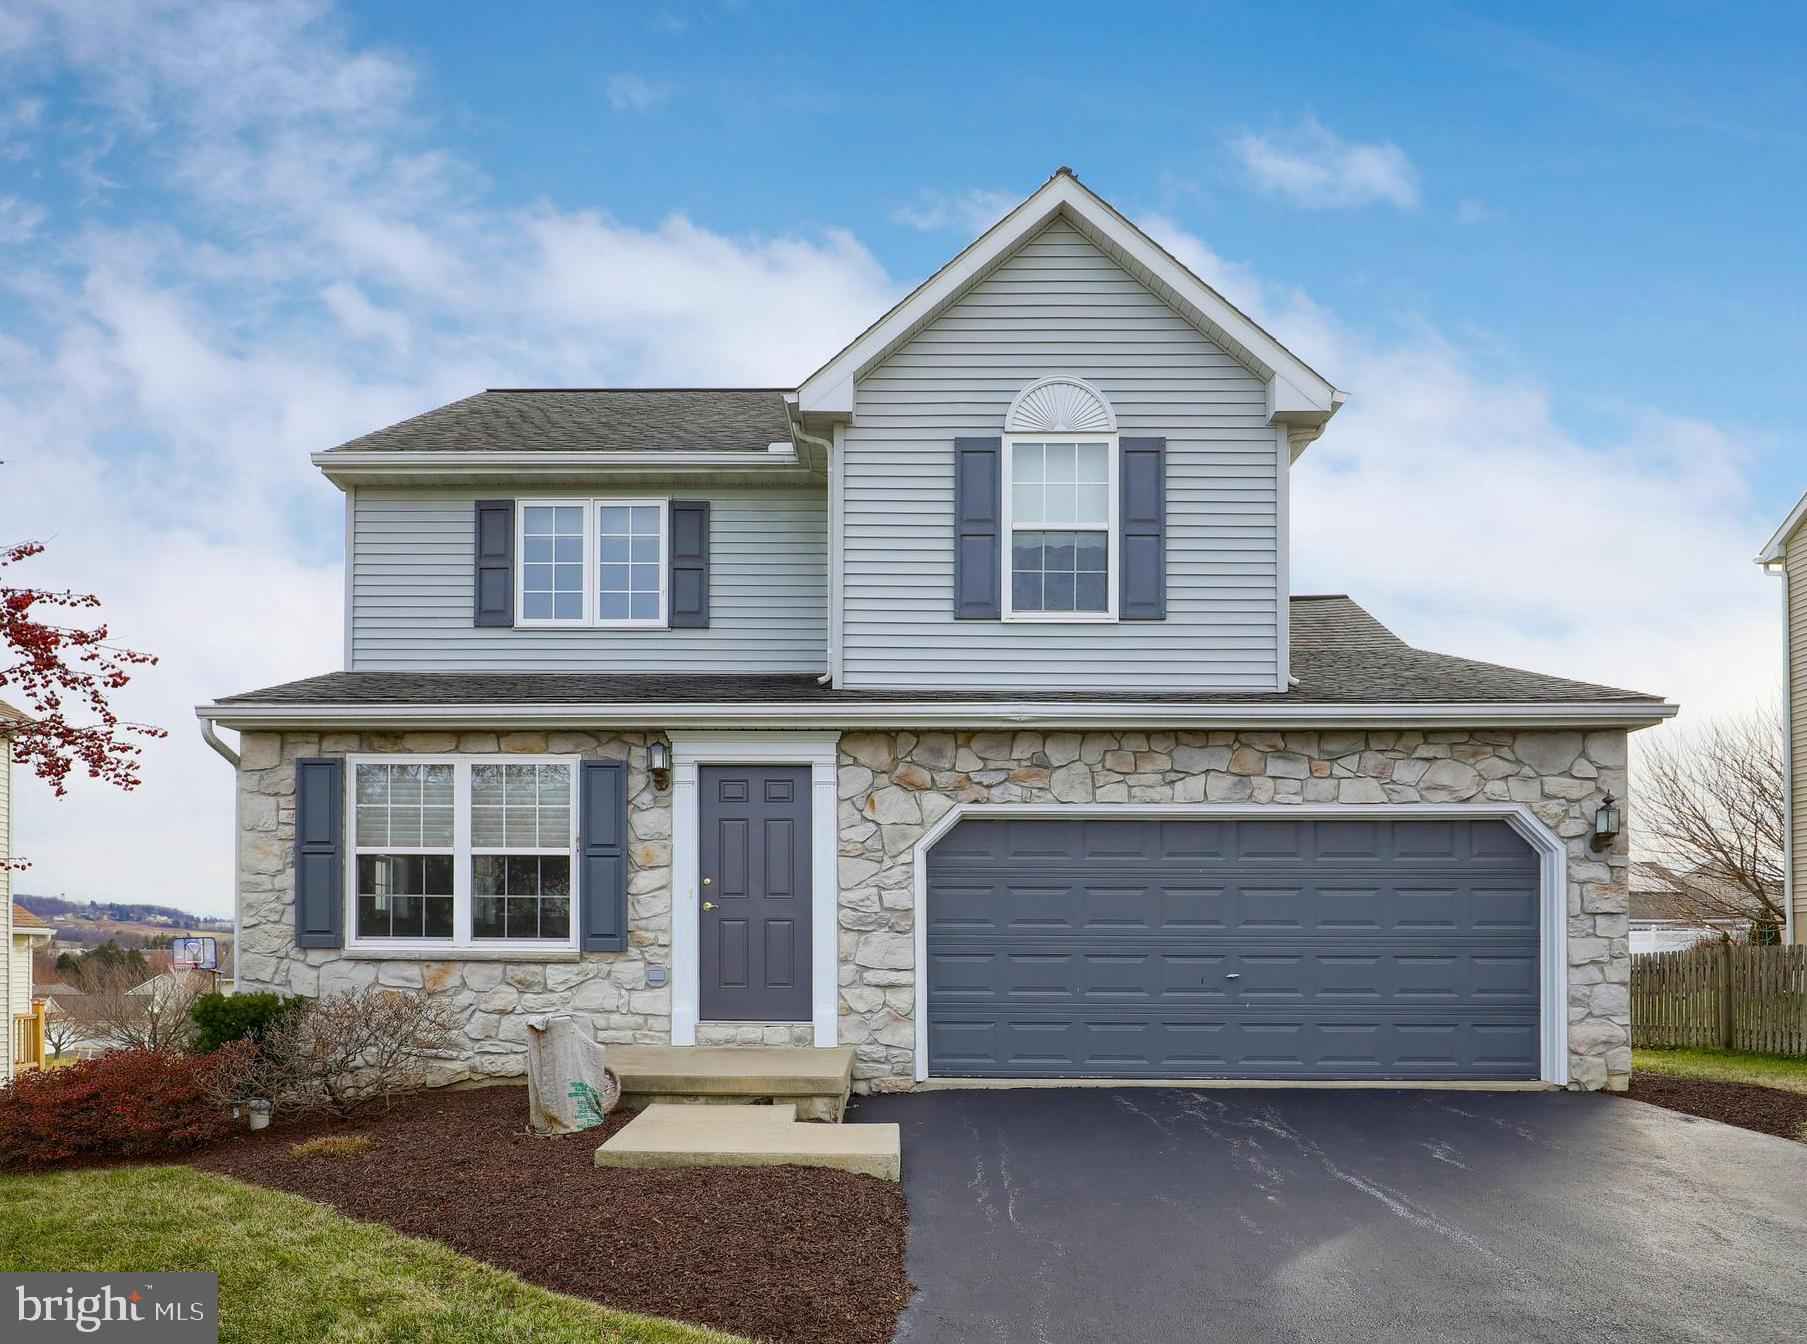 611 HARVEST DRIVE, DALLASTOWN, PA 17313